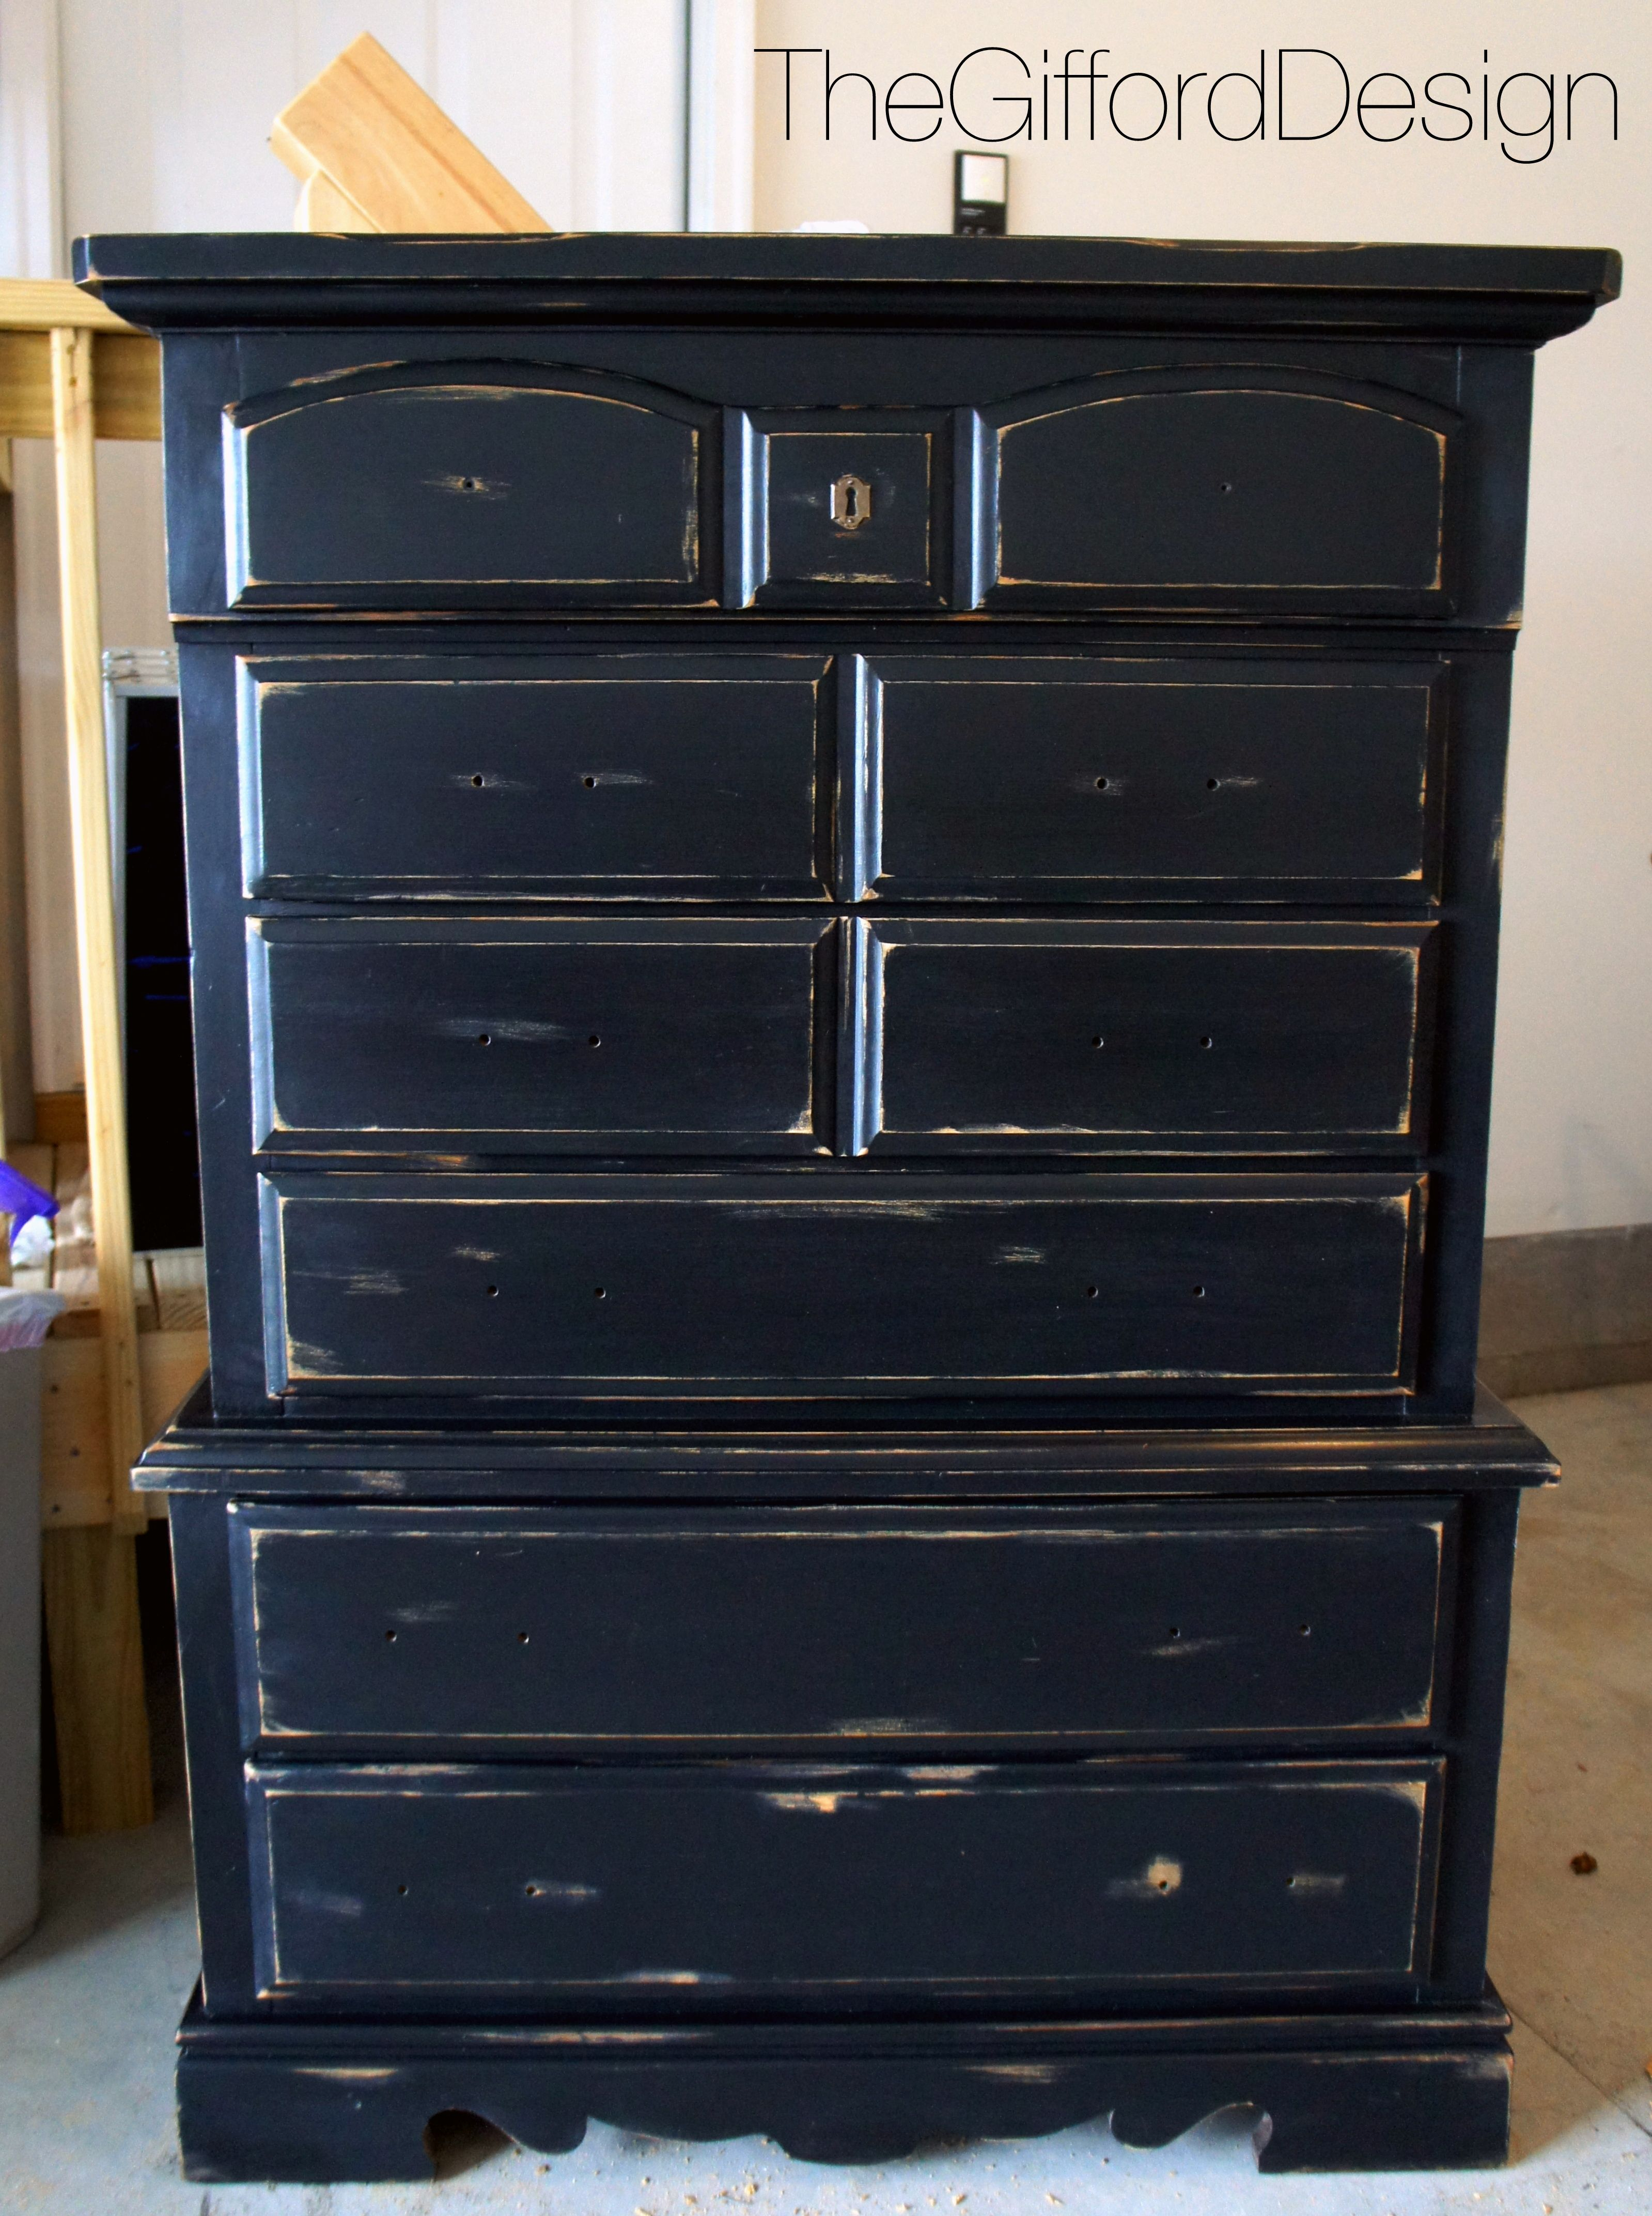 Black U0026 Gold Distressed Dresser @ Thegifforddesign.com